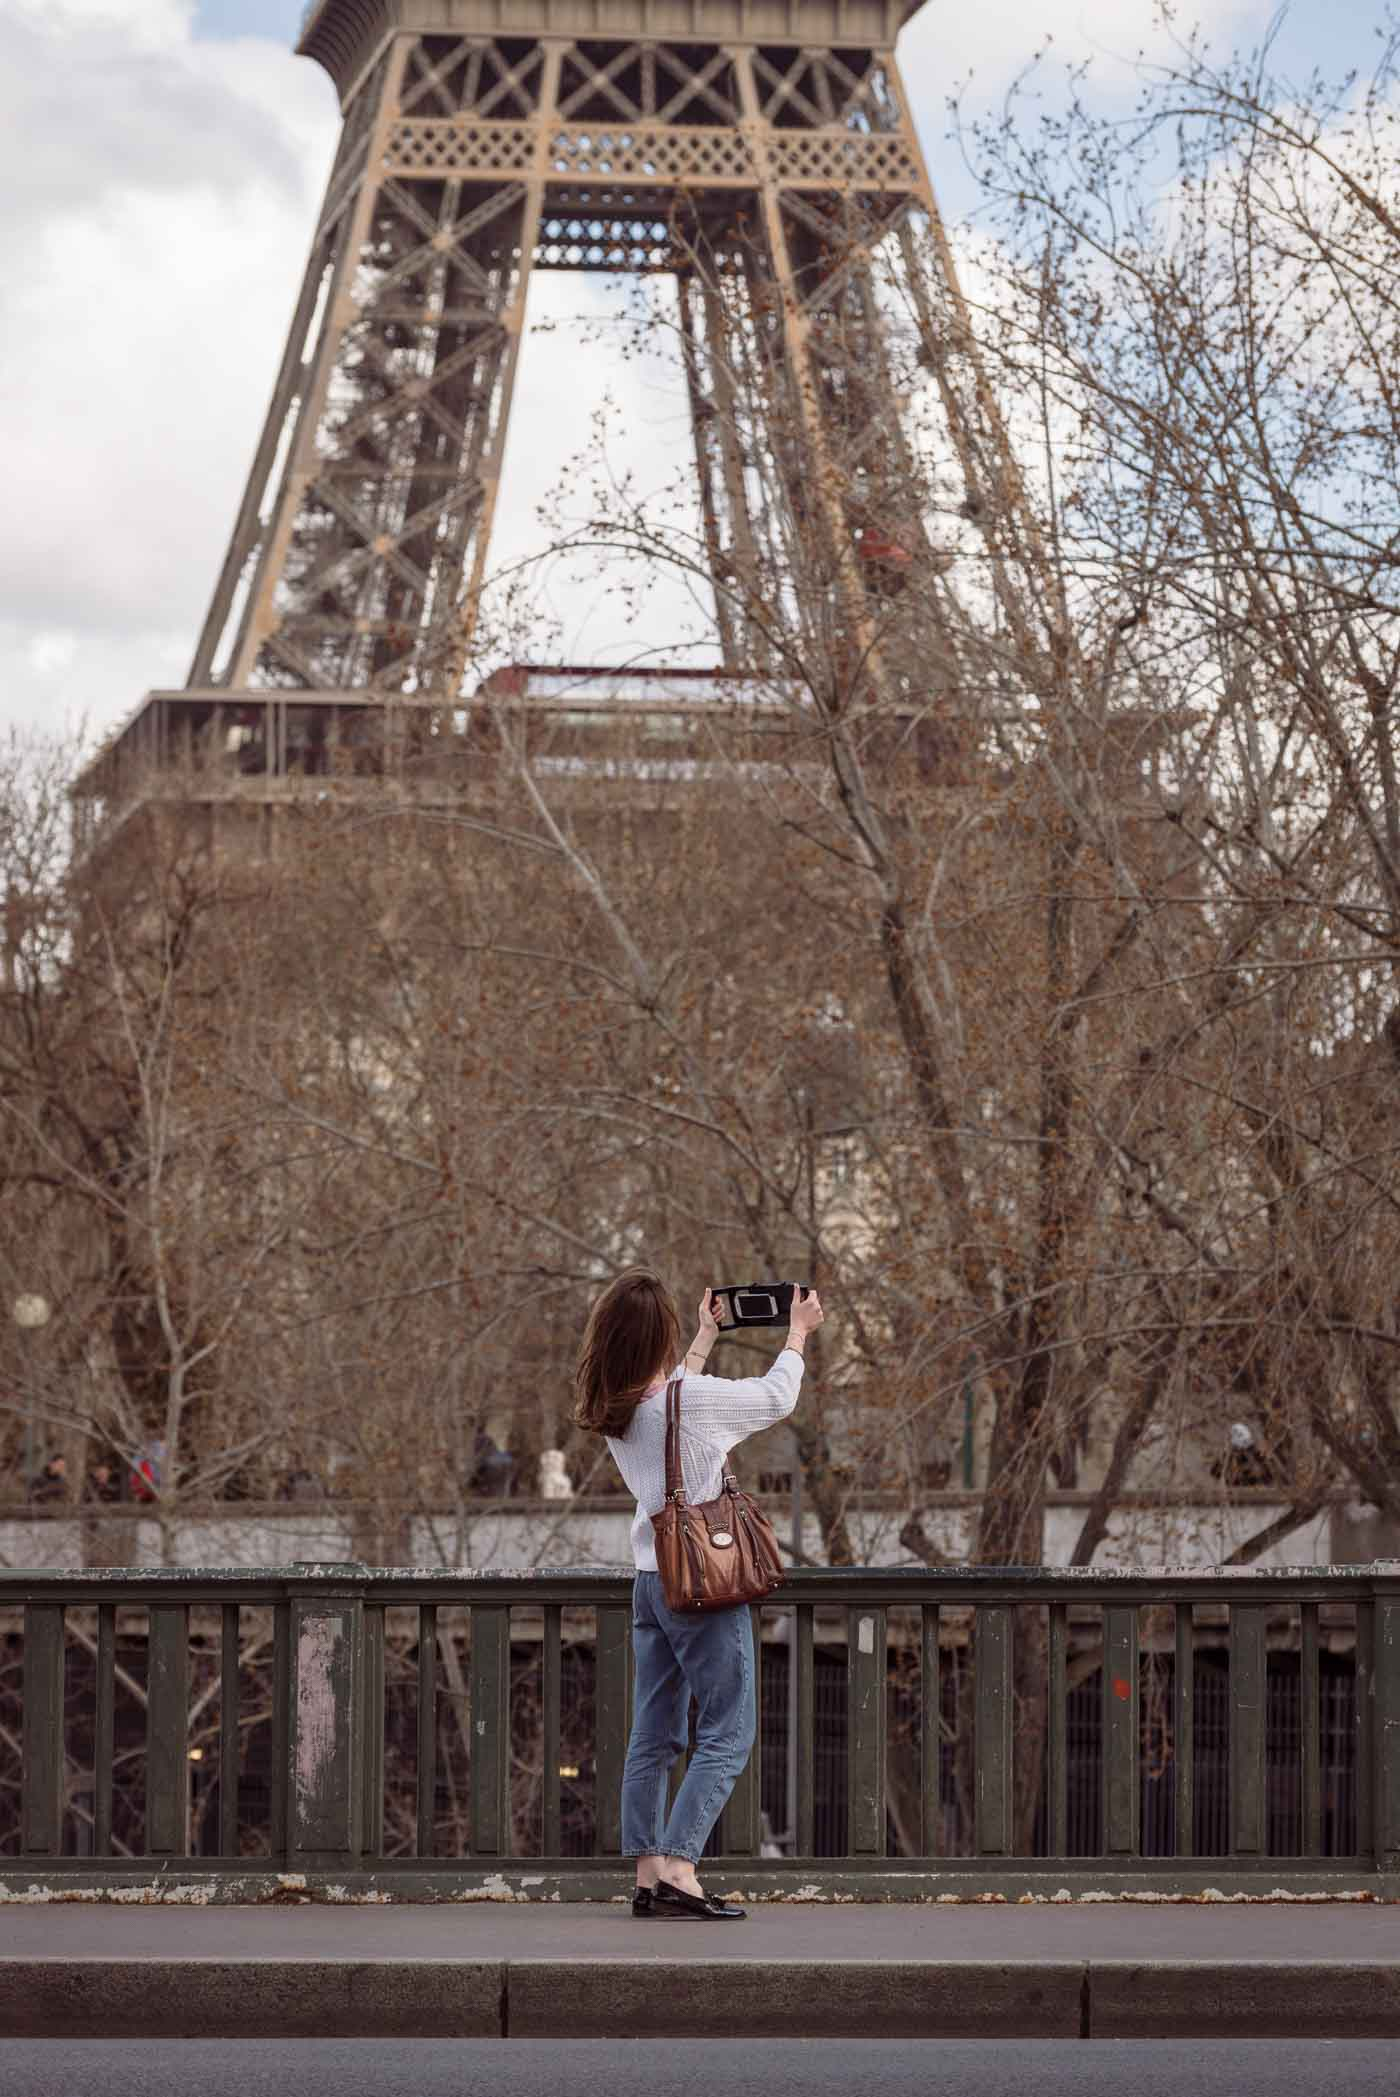 lifestyle photoshoot in Paris France for iOgrapher, model using iPhone filming case on bridge in front of Eiffel Tower and trees